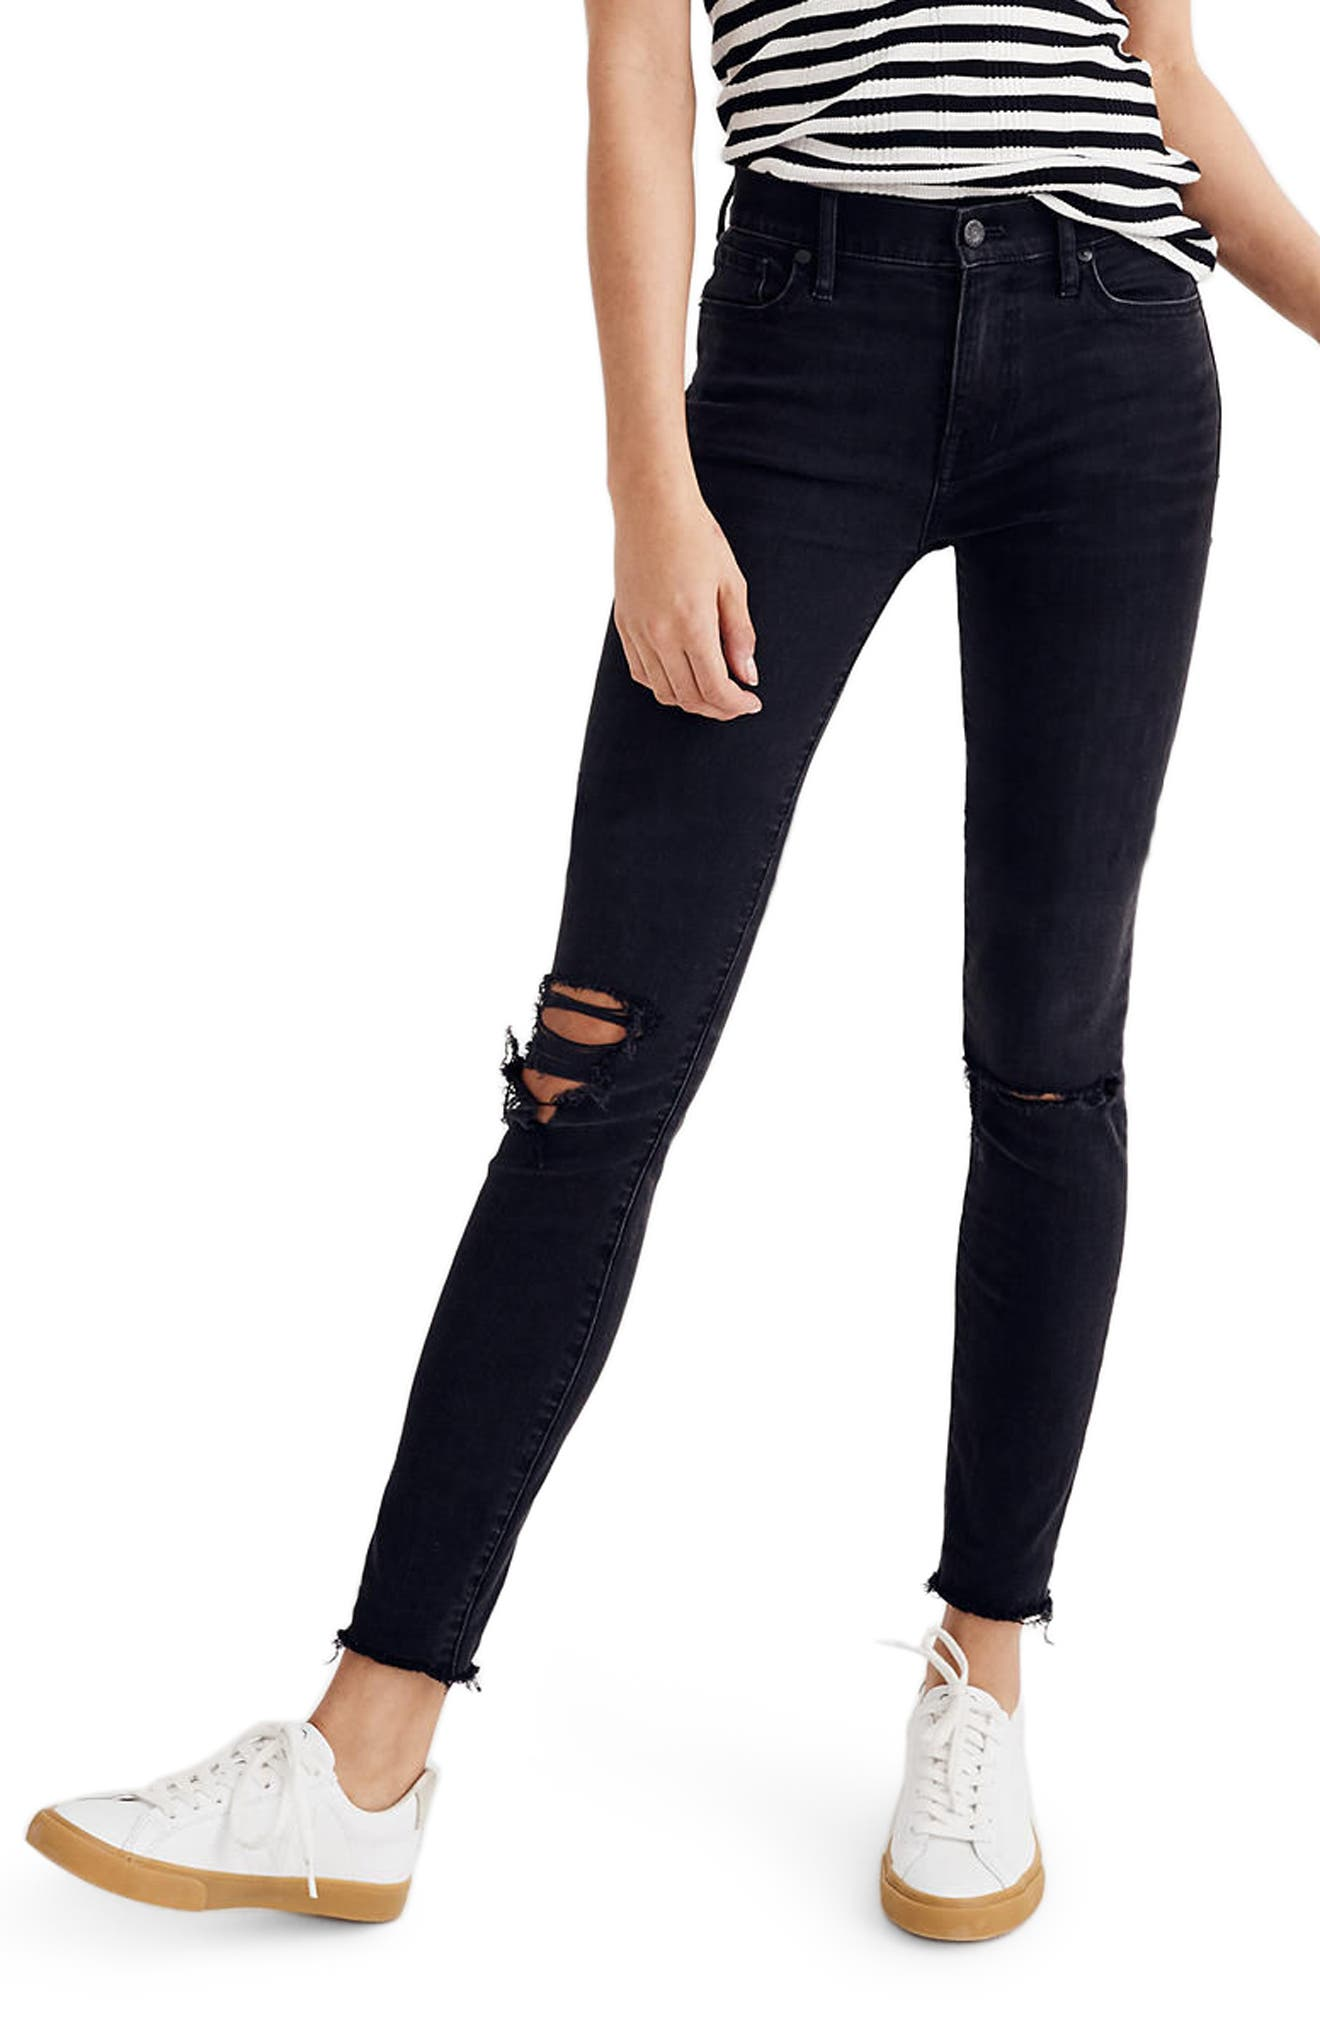 MADEWELL 9-Inch High Waist Skinny Jeans, Main, color, BLACK SEA